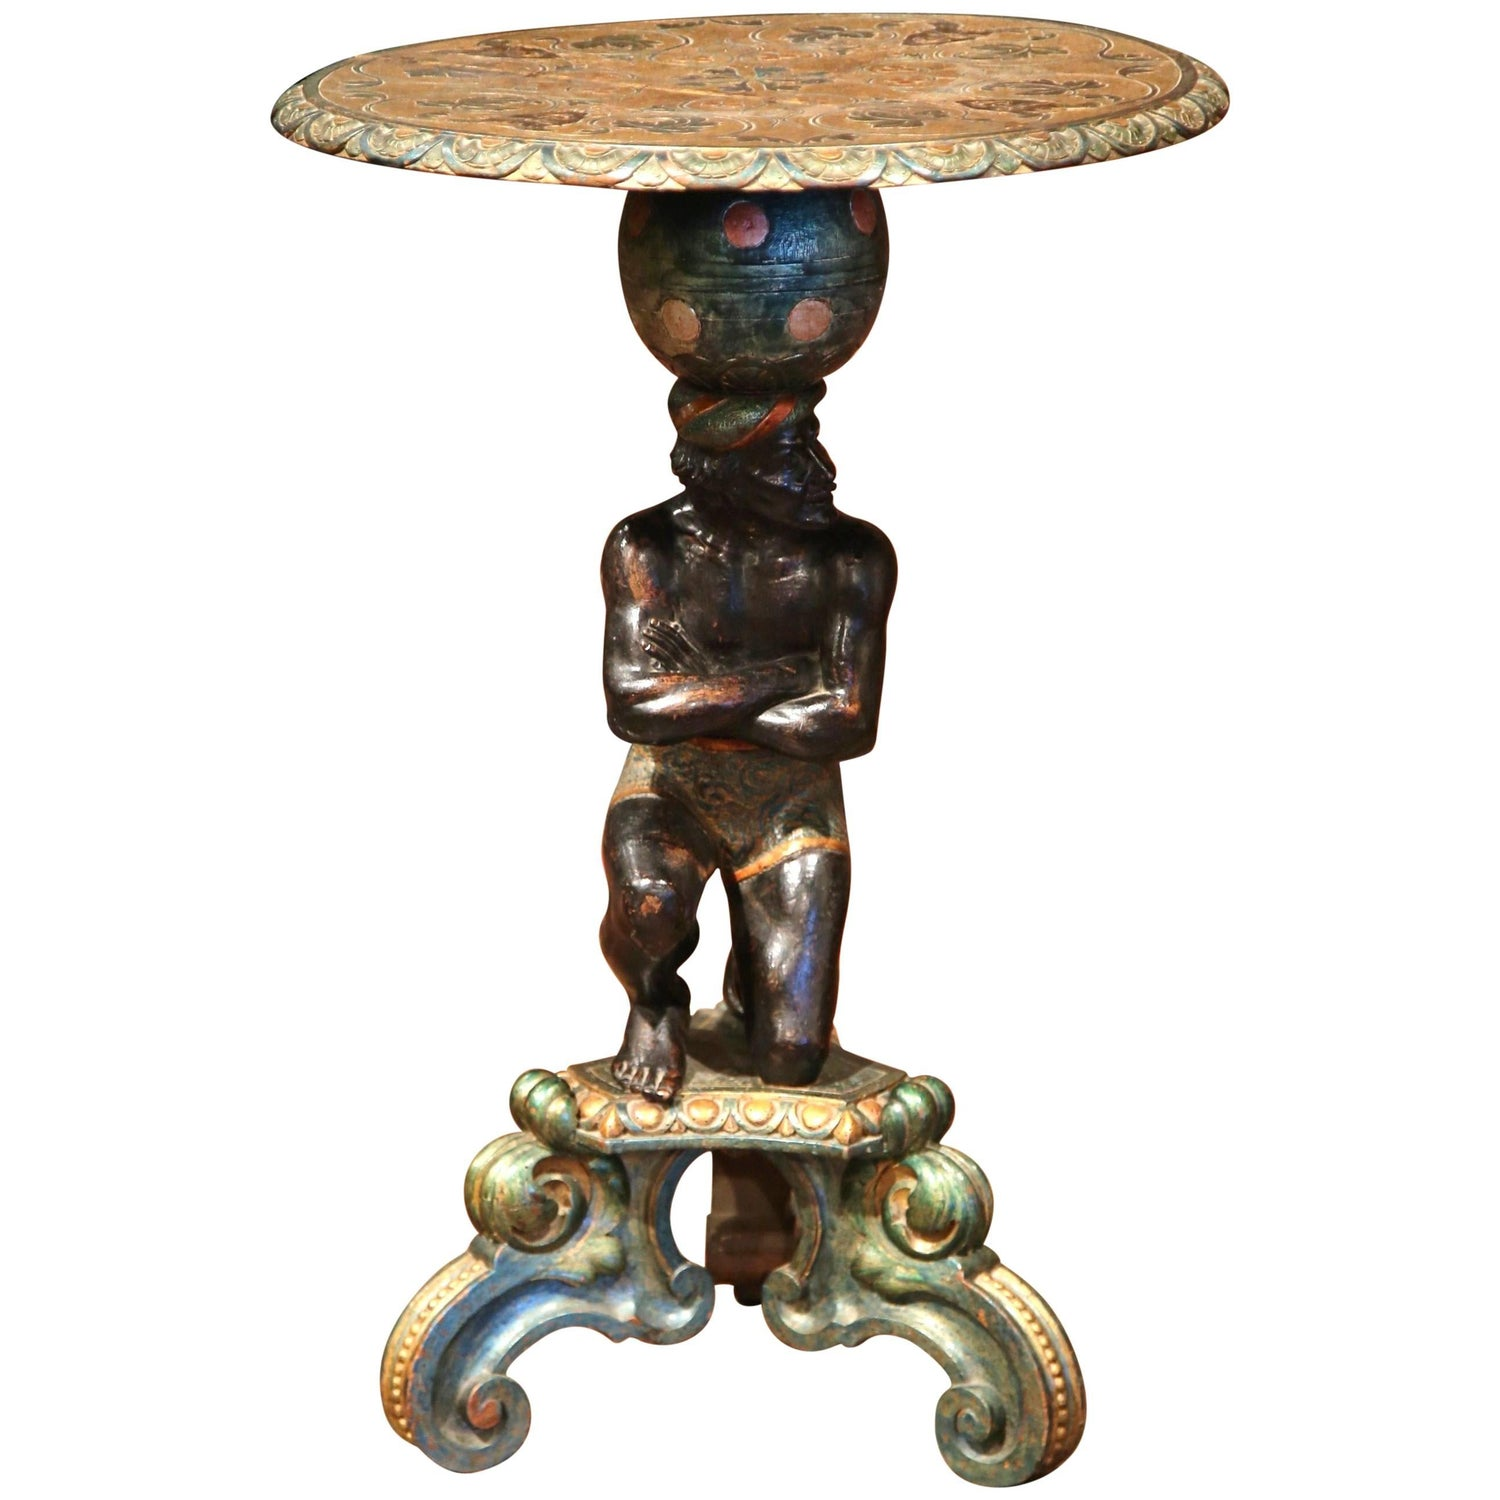 Italian Glazed Terra Cotta Dolphin Table at 1stdibs